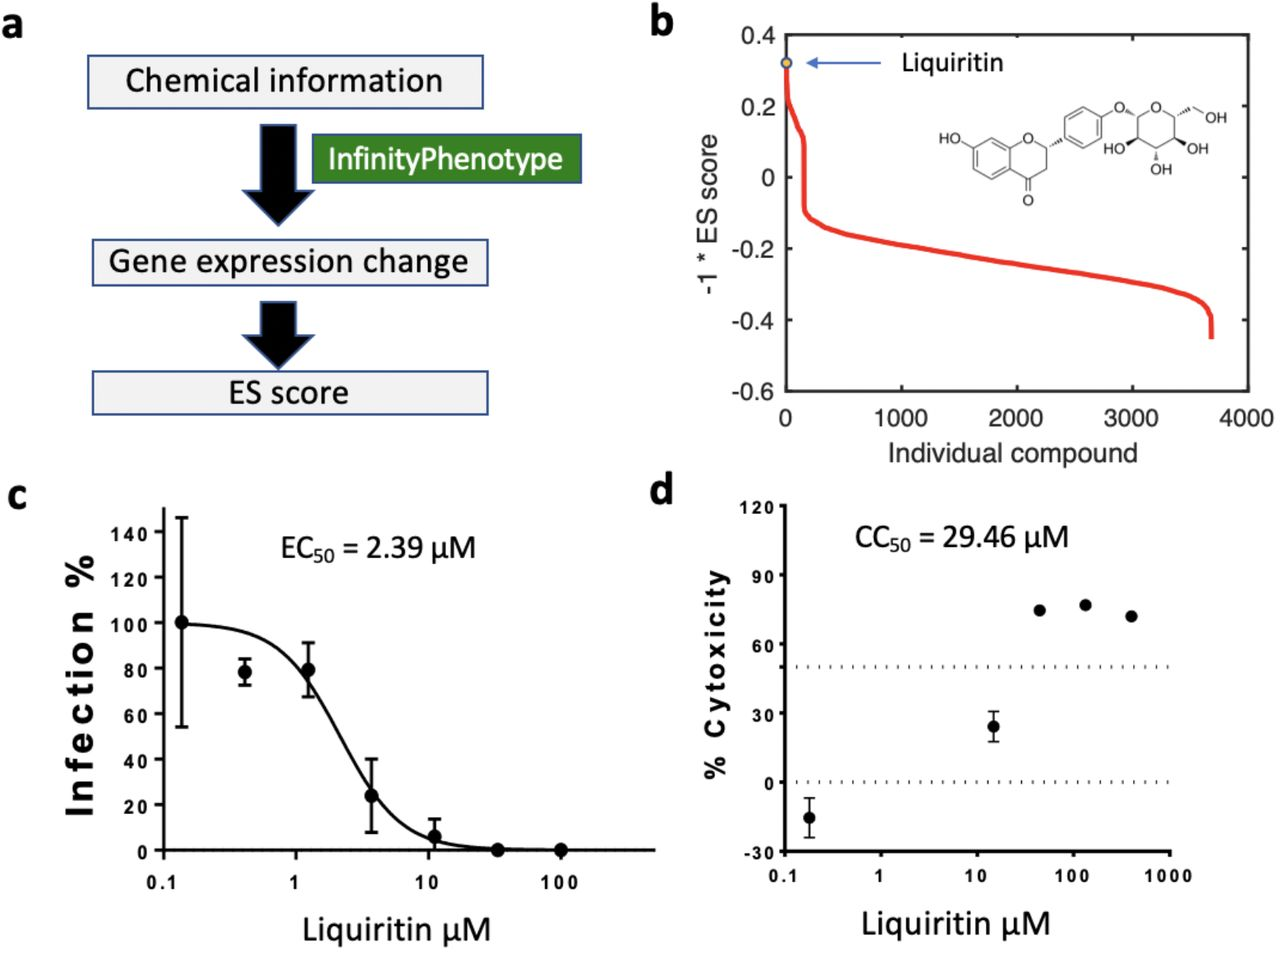 The antiviral activities of the liquiritin against SARS-CoV-2 in vitro . a) The workflow of the computation of enrichment score (ES). b) The ES score of all compounds. Liquiritin ranks first. c) The antiviral activity of liquiritin in Vero E6 cells (EC 50 = 2.39 μM, n = 3 for where error bar is shown). d) Cytotoxicity of the liquiritin to Vero E6 cells was measured by MTS assay.